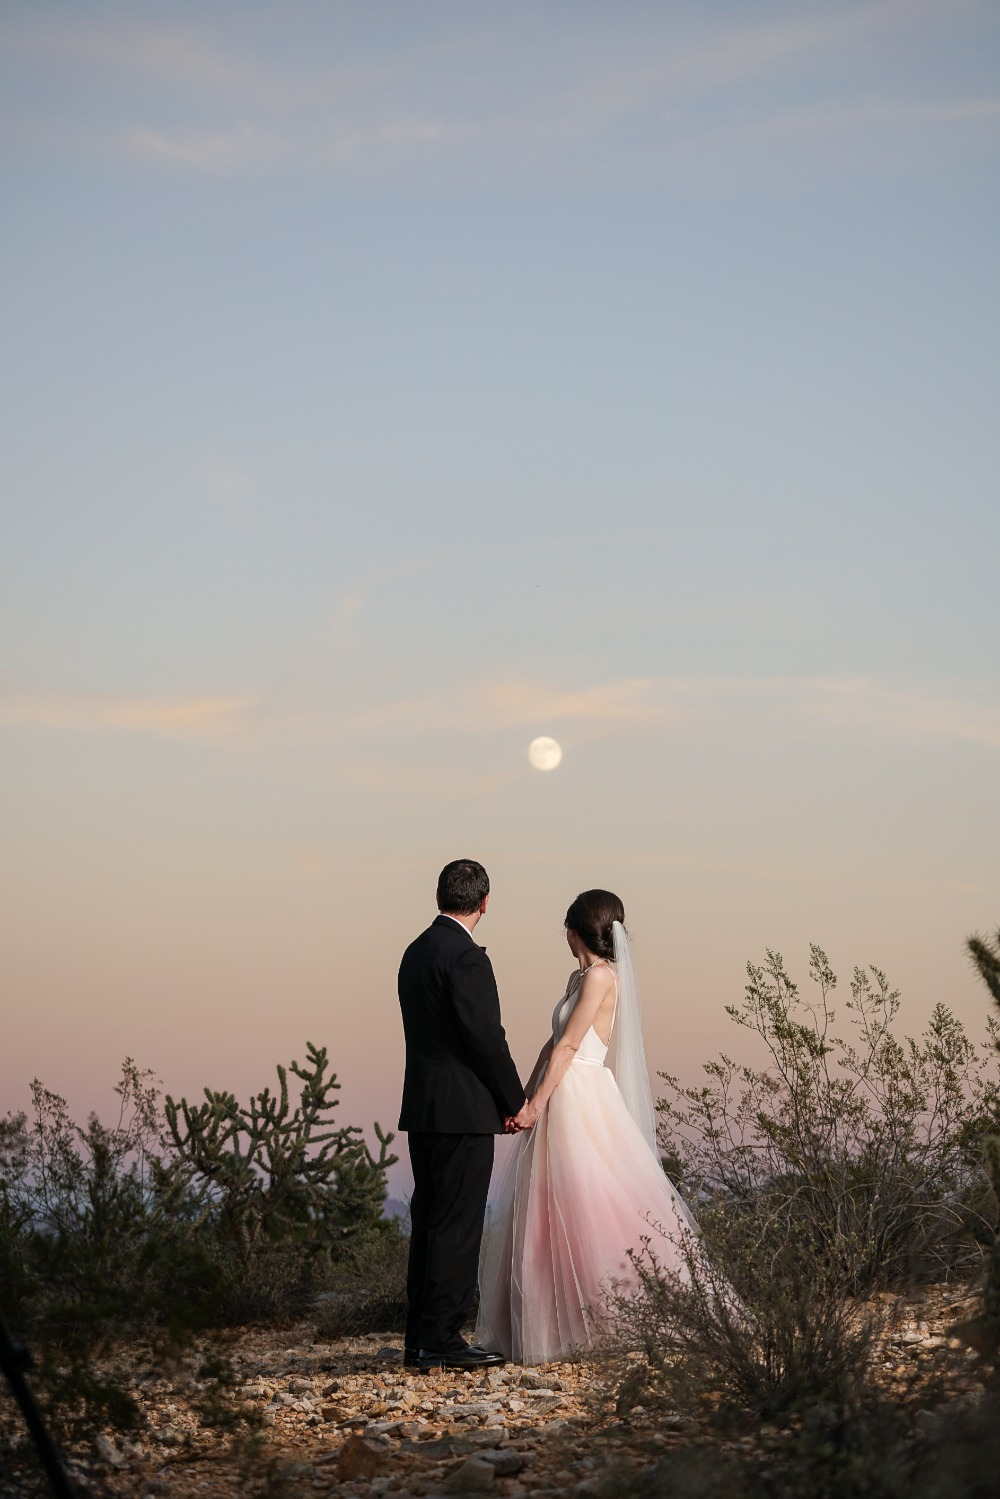 Beautiful desert moon wedding photo